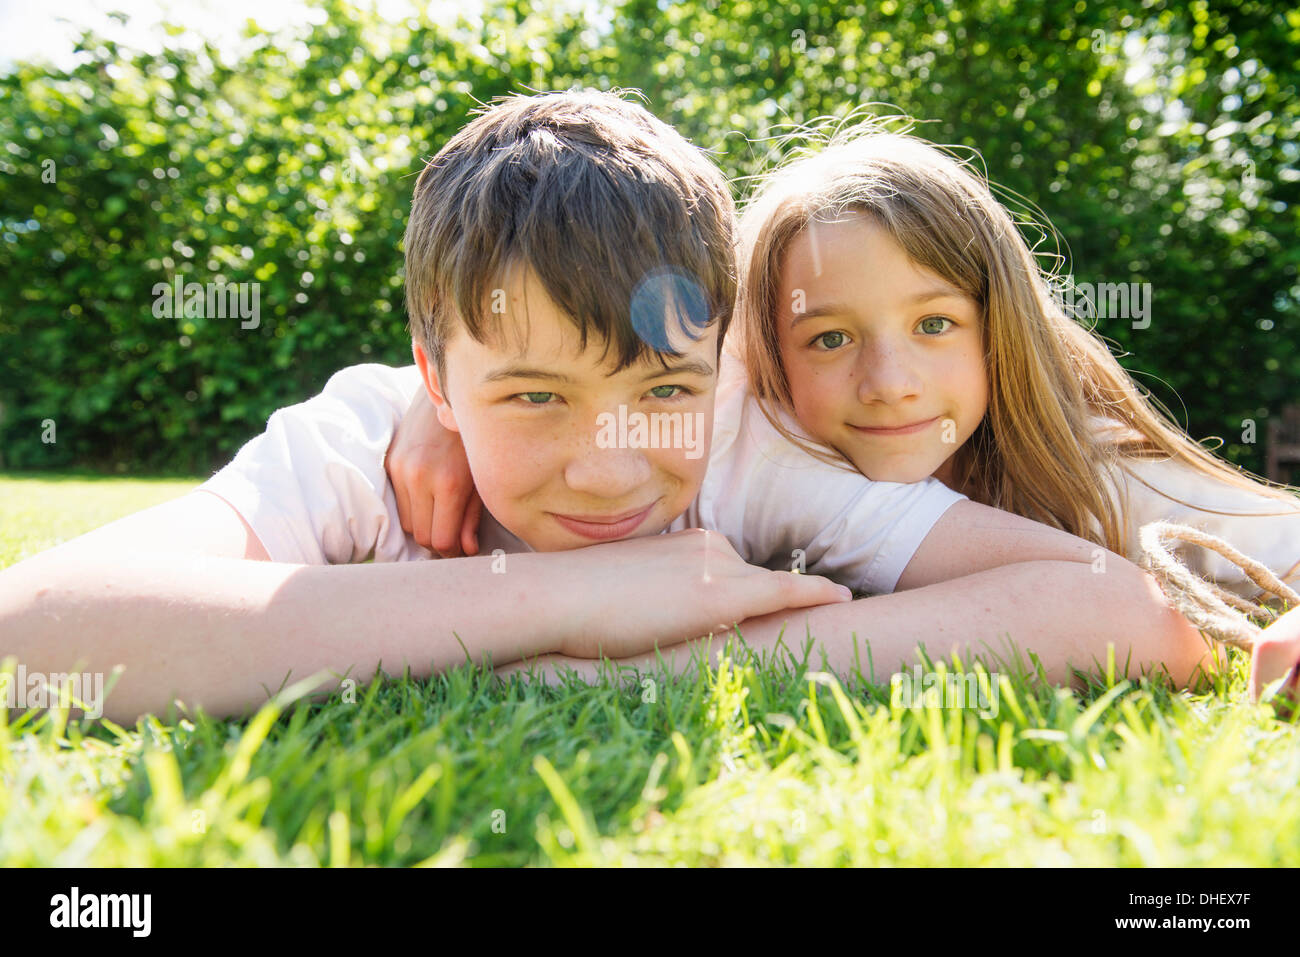 Portrait of brother and sister lying on grass - Stock Image